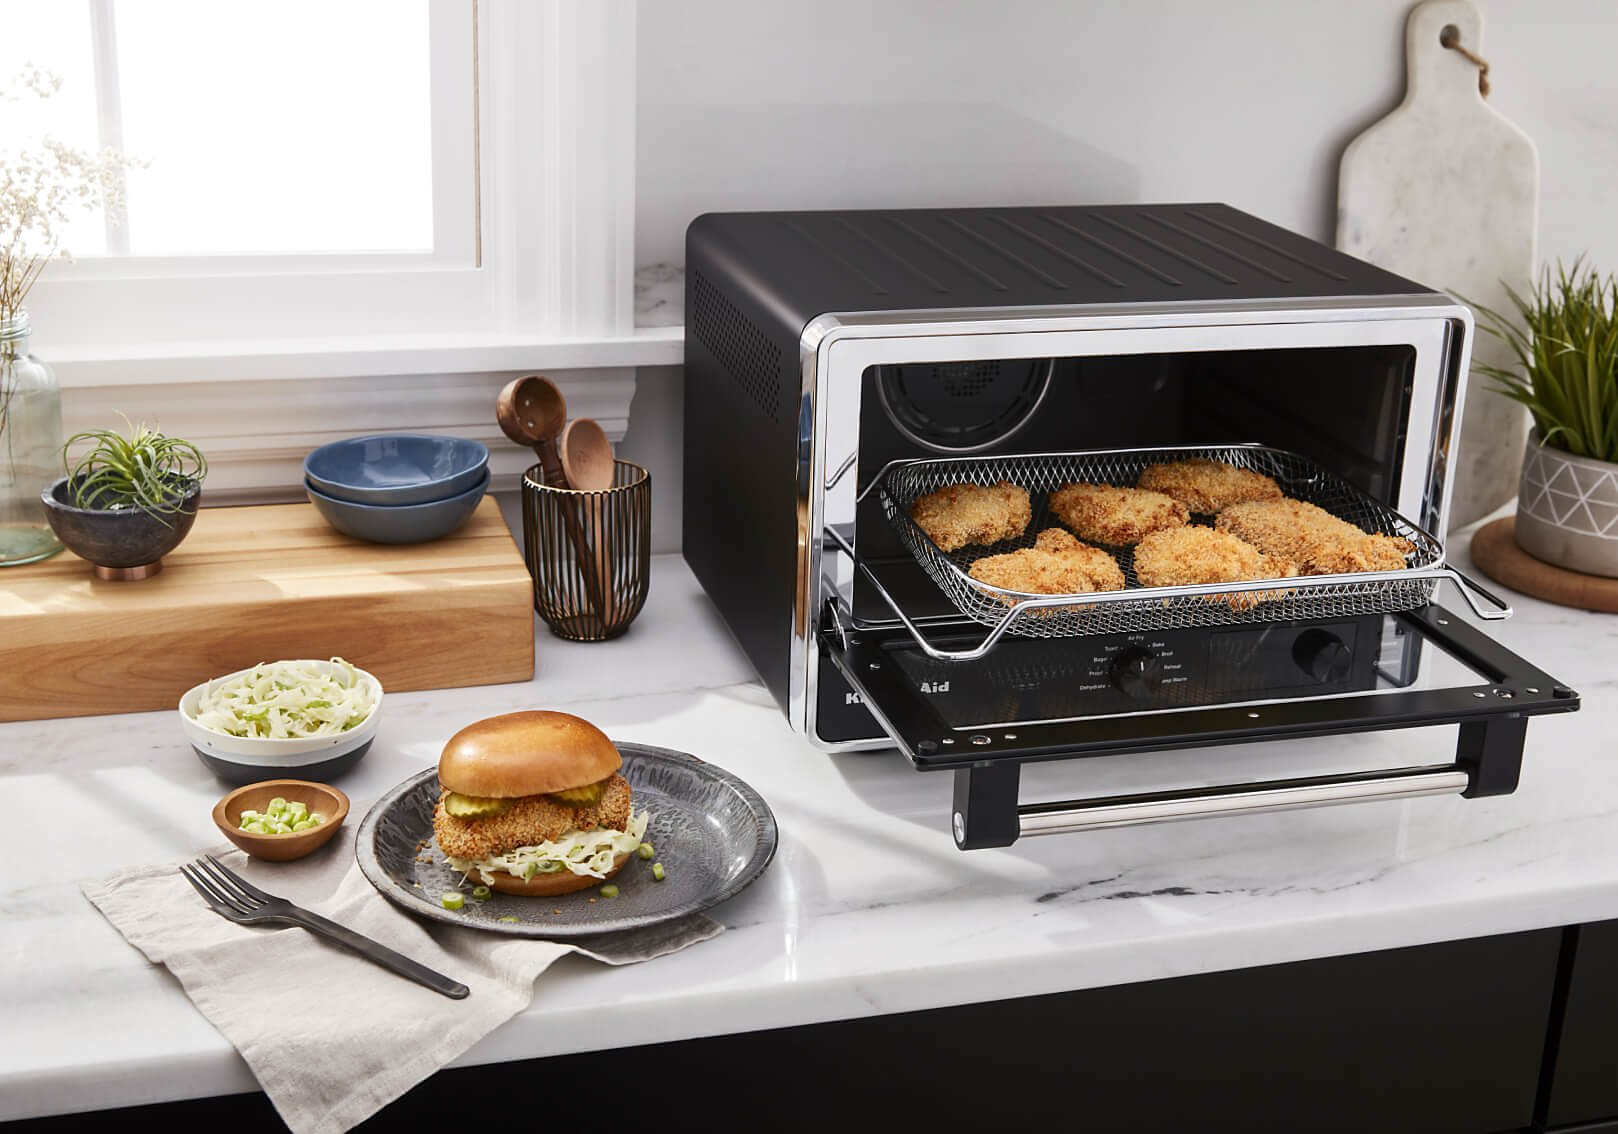 KitchenAid® Digital Countertop Oven with air fried chicken.